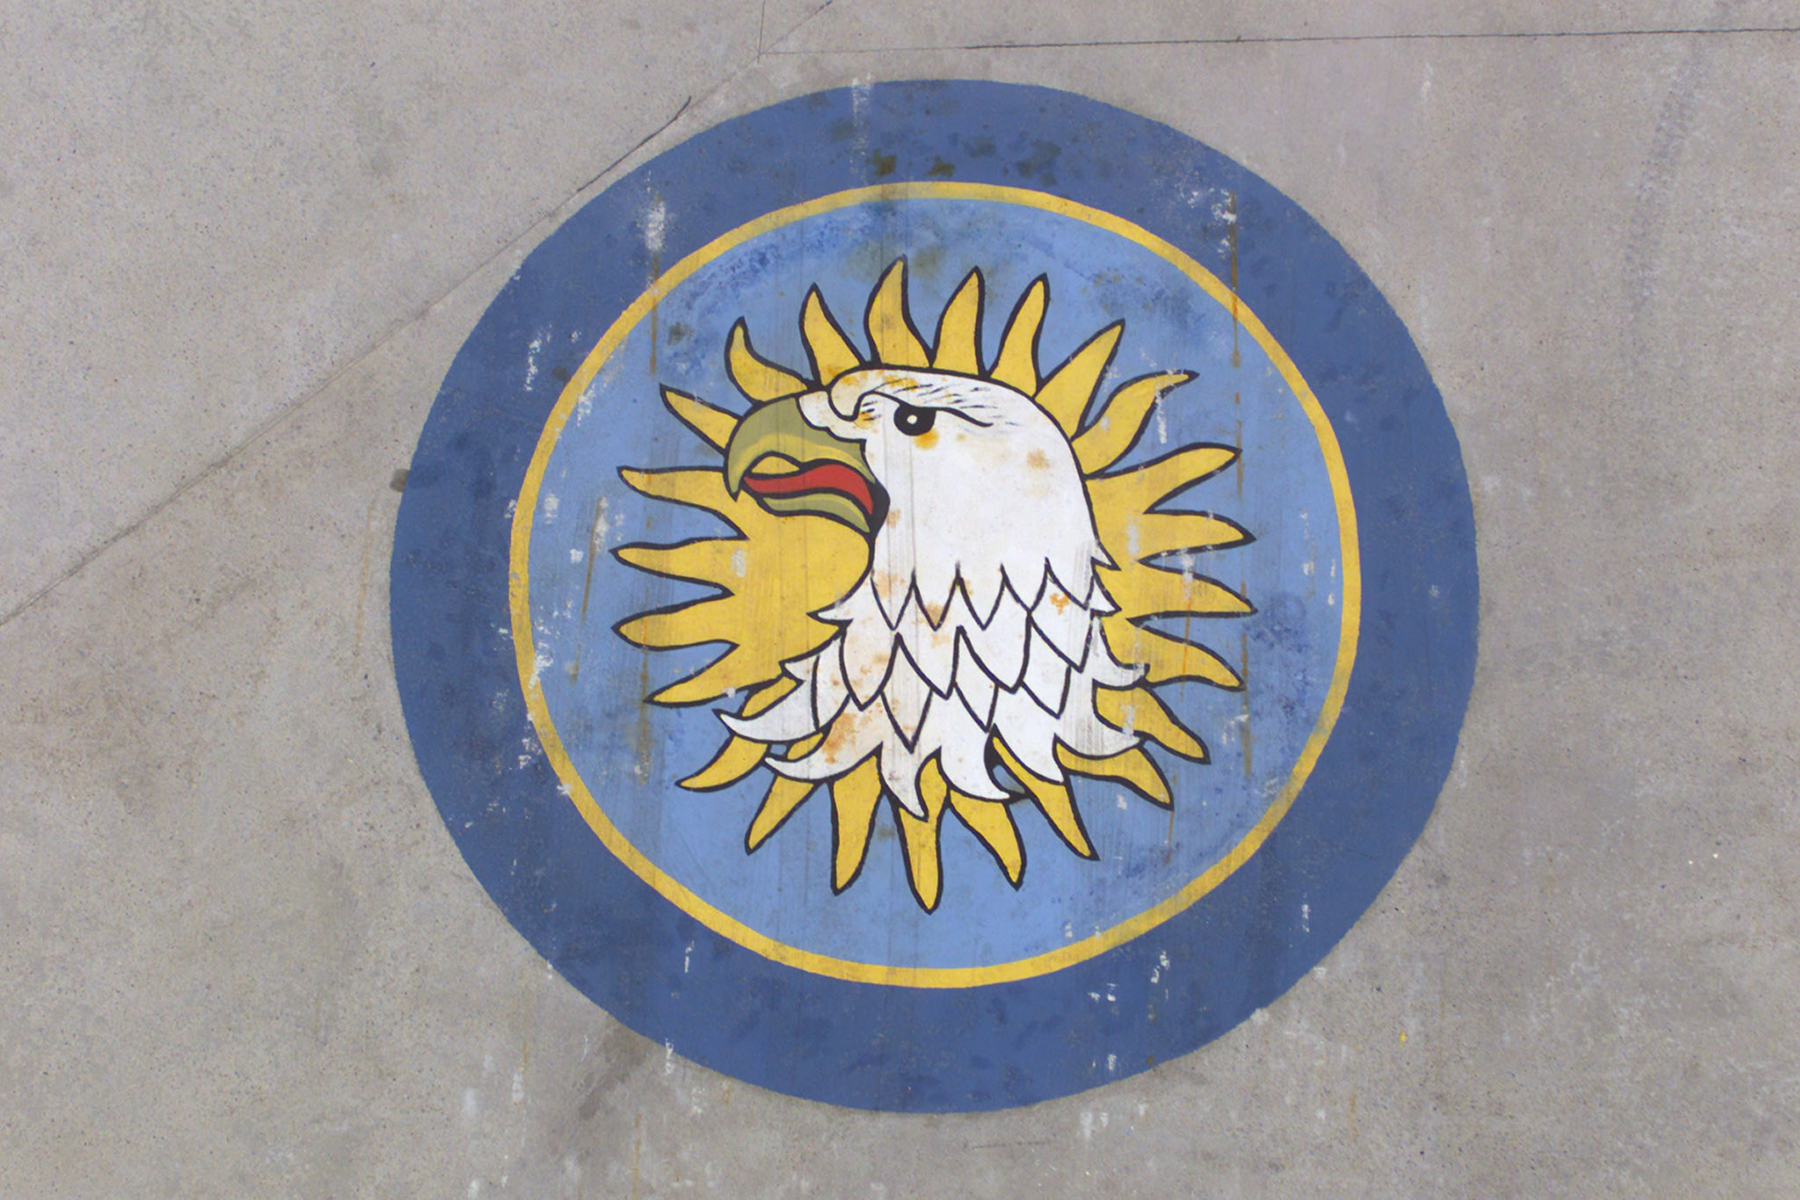 The crest from the 430 Squadron badge adorns the tarmac at Camp Black Bear in Velika Kladusa, Bosnia-Herzegovina, as members of the helicopter squadron serve on Task Force Bosnia-Herzegovina, Rotation 10, of Operation Palladium, Canada's contribution to the NATO Stabilization Force, in August 2002. PHOTO: VK2002-0116-02d DND Archives